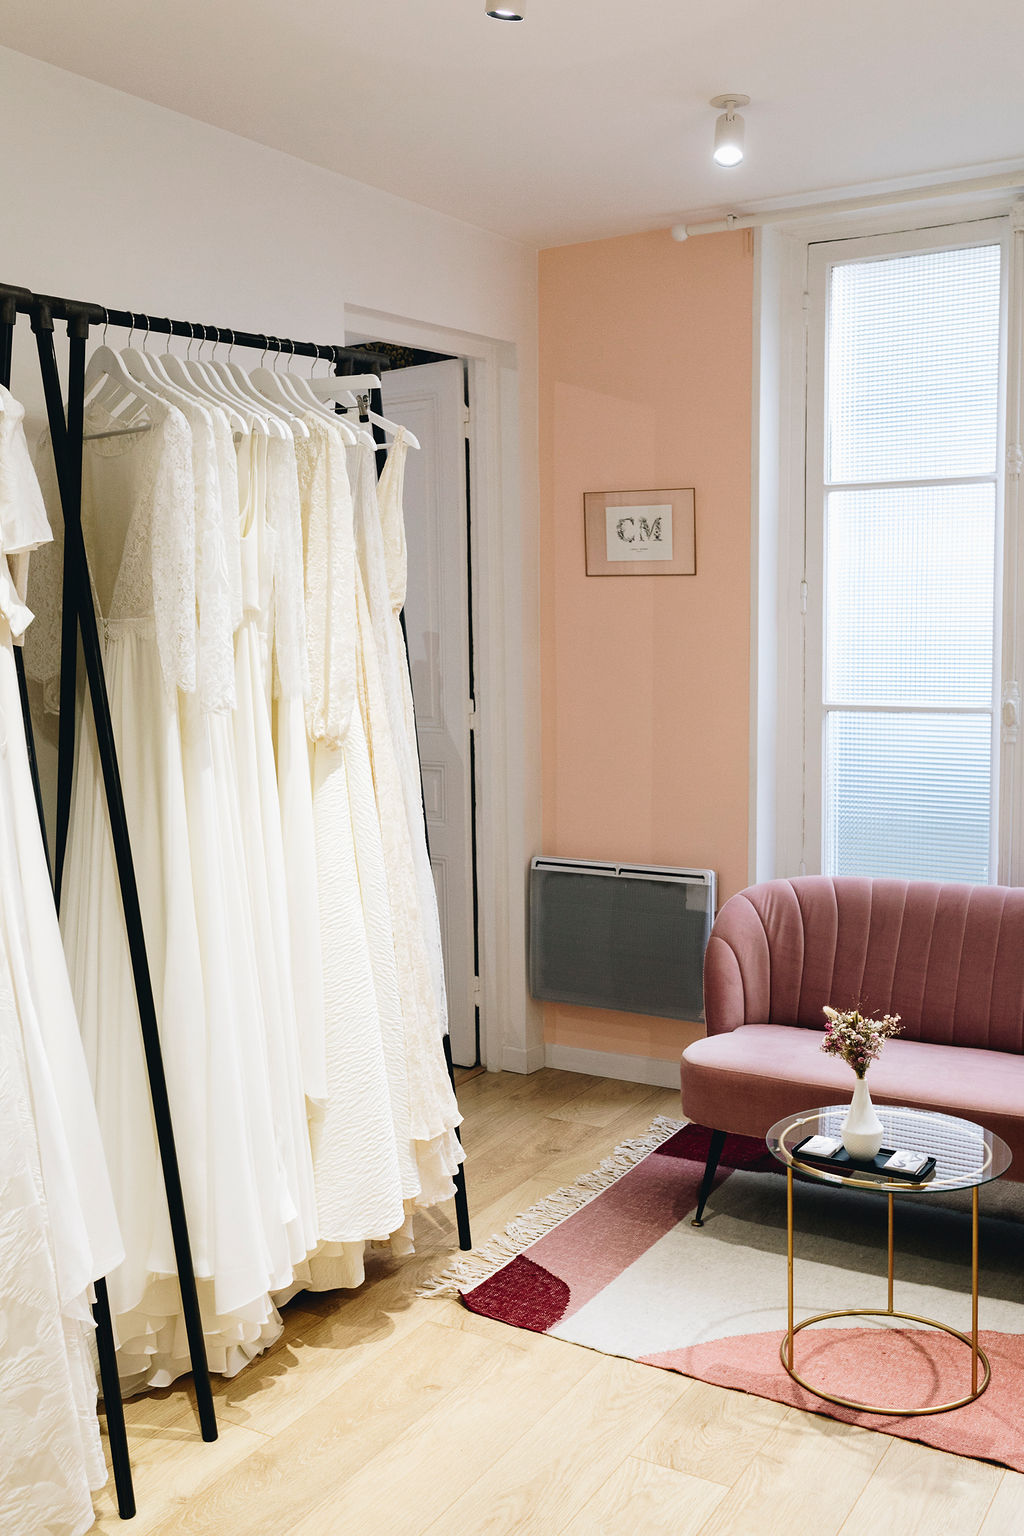 atelier showroom robe de mariée paris france